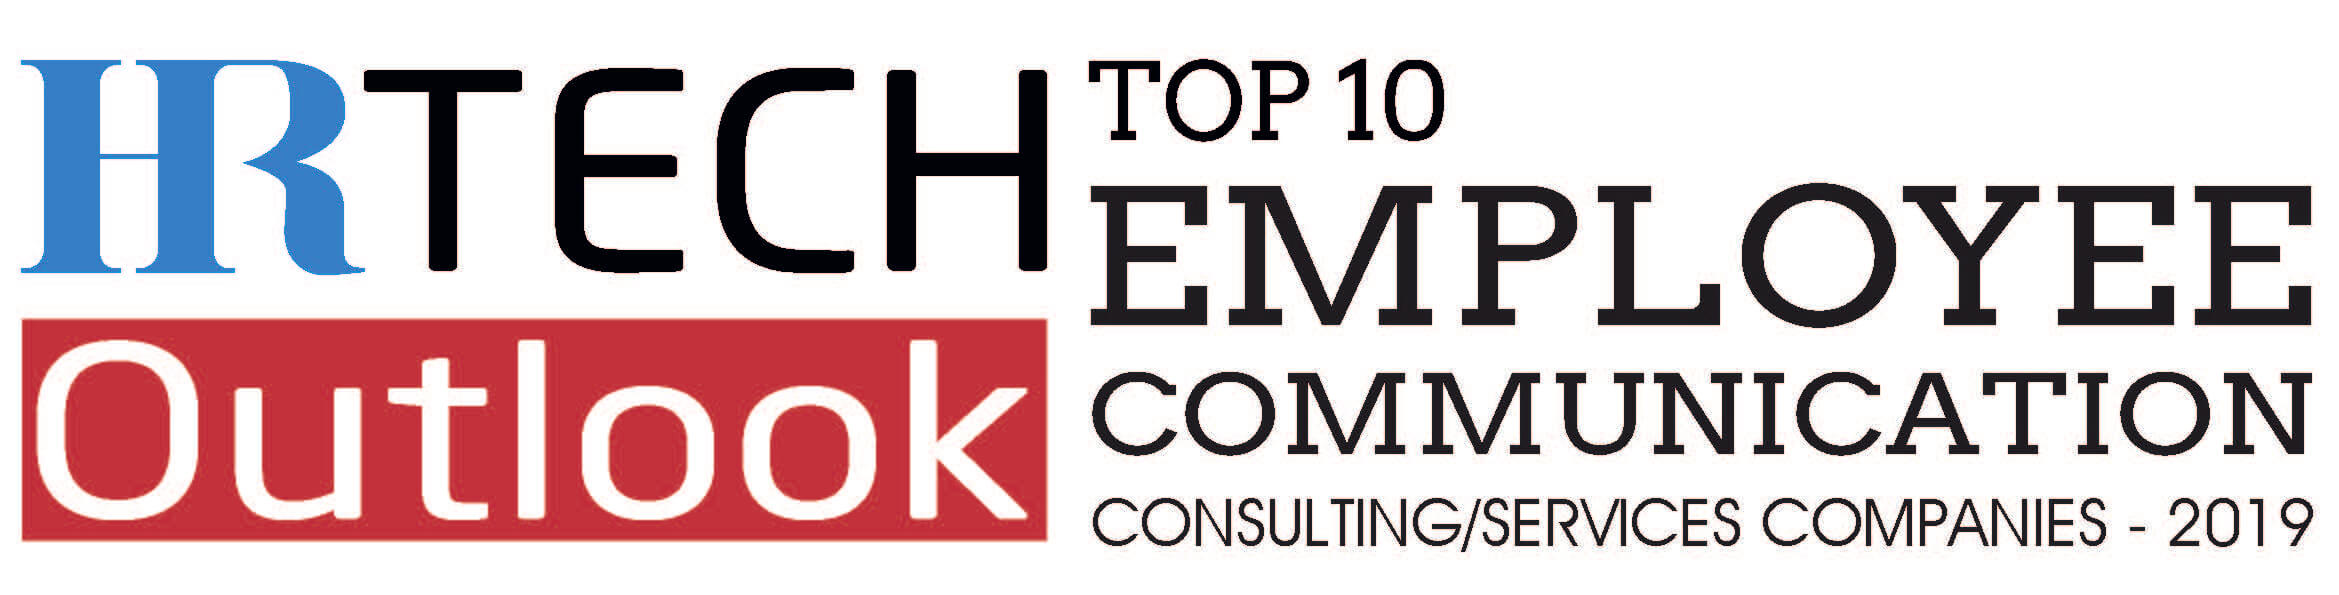 StitchDX Top 10 HR Communication Consultant